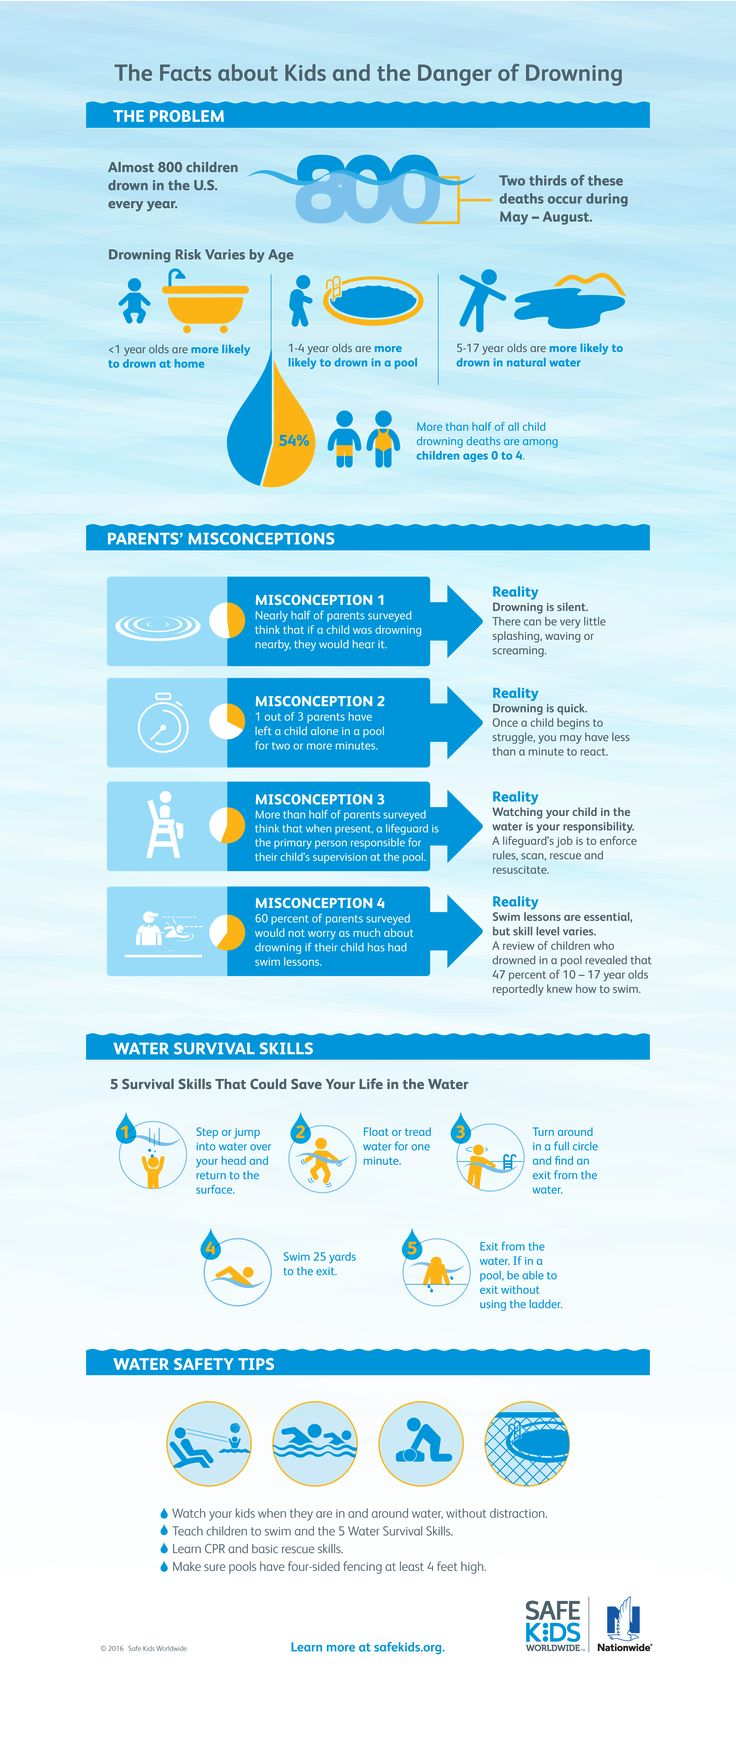 Water Safety and Persistent Misconceptions | Safe Kids Worldwide